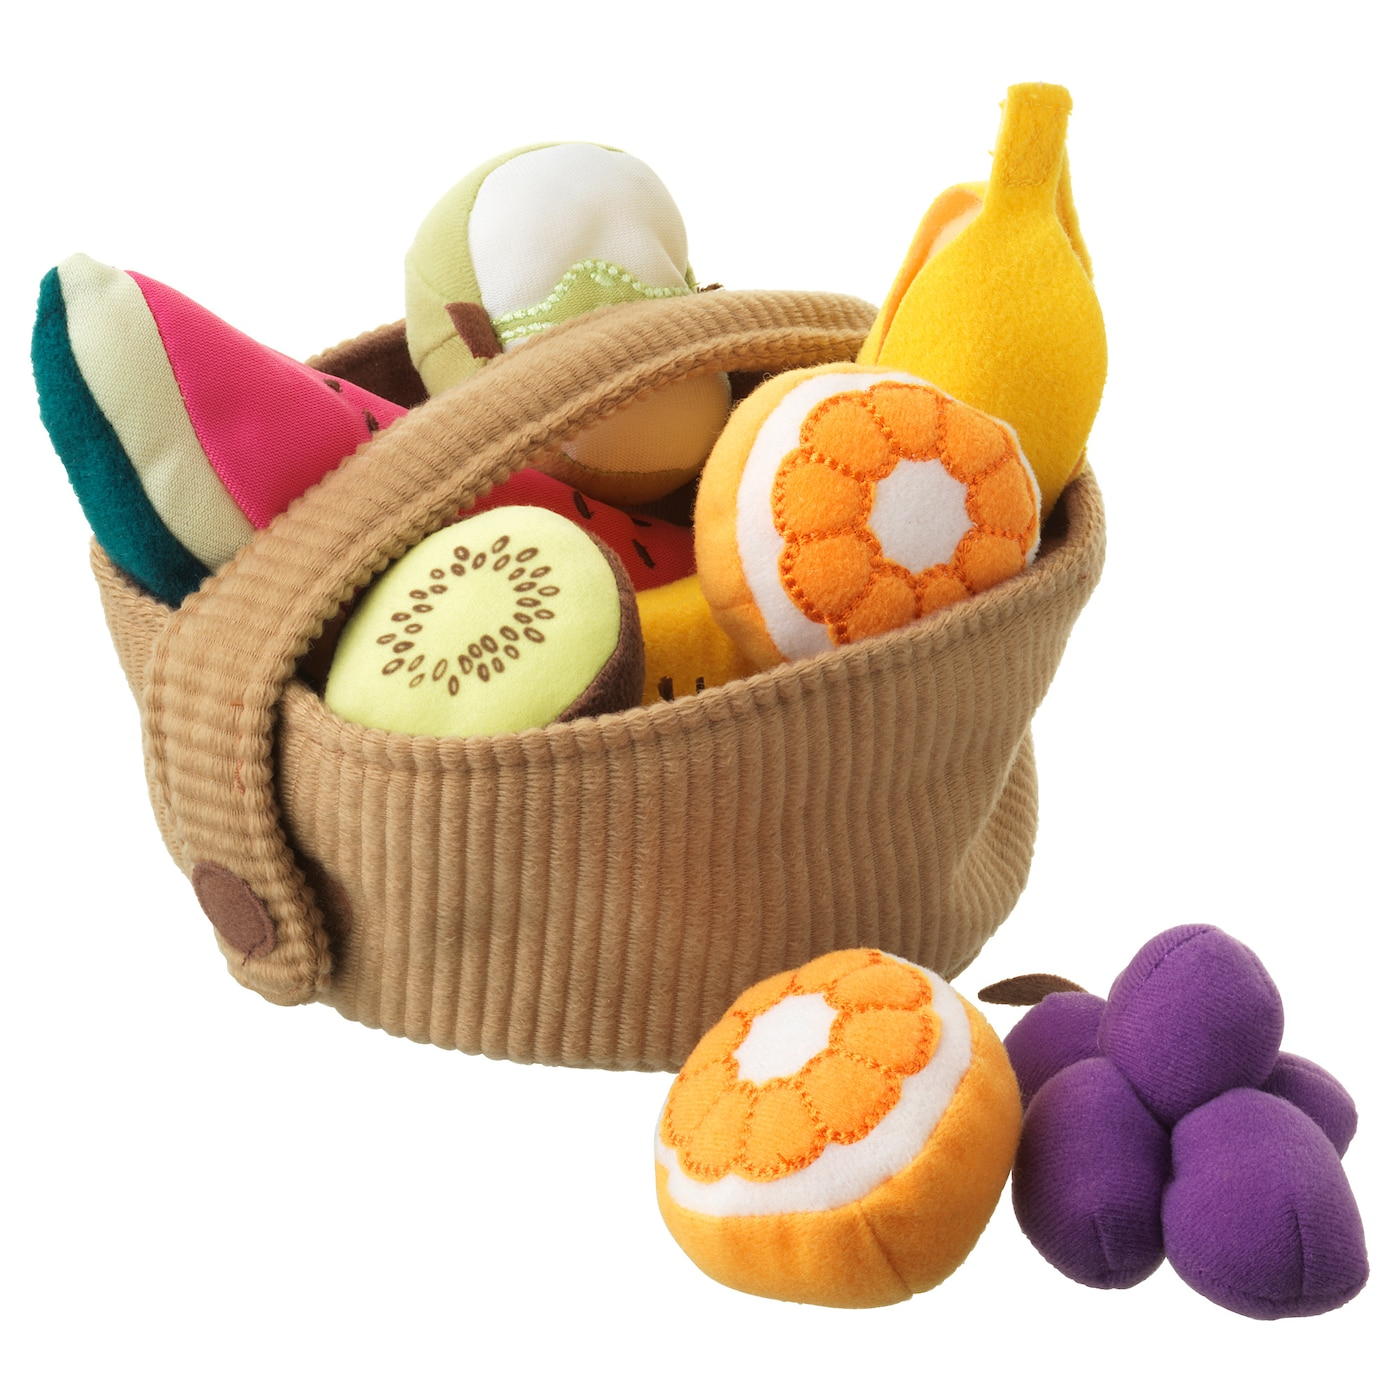 IKEA DUKTIG 9-piece fruit basket set